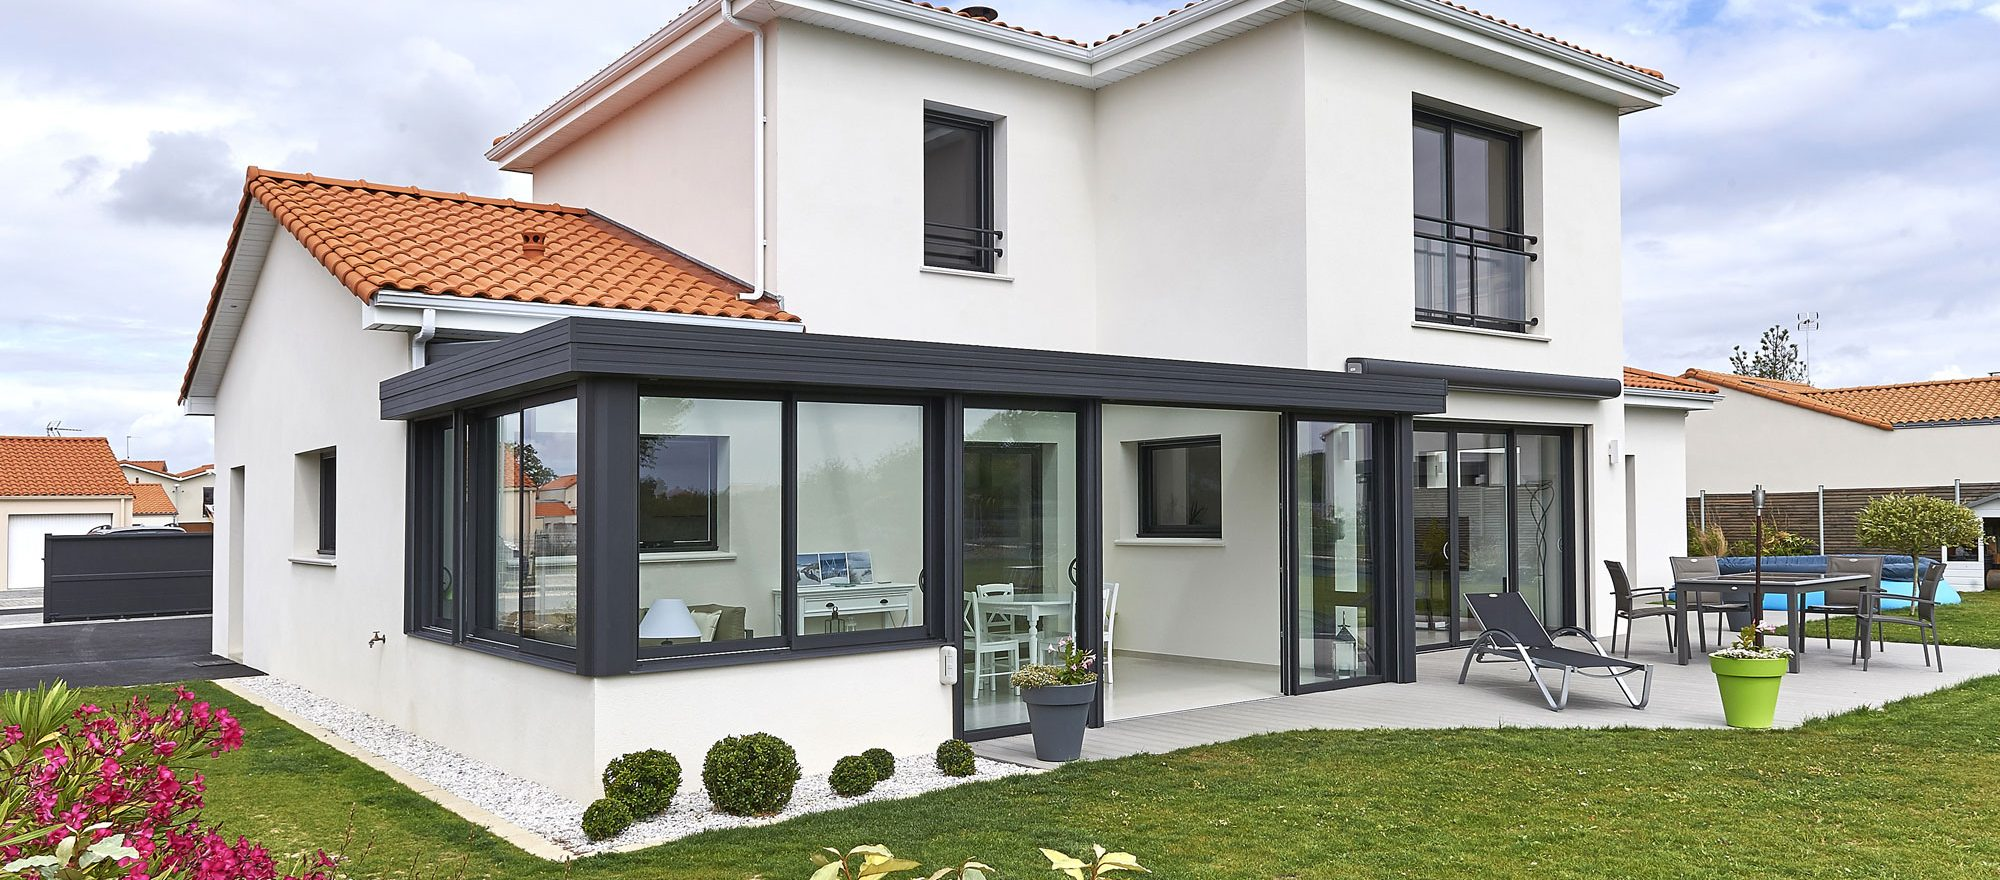 V randas et extensions fillonneau for Extension maison en dur